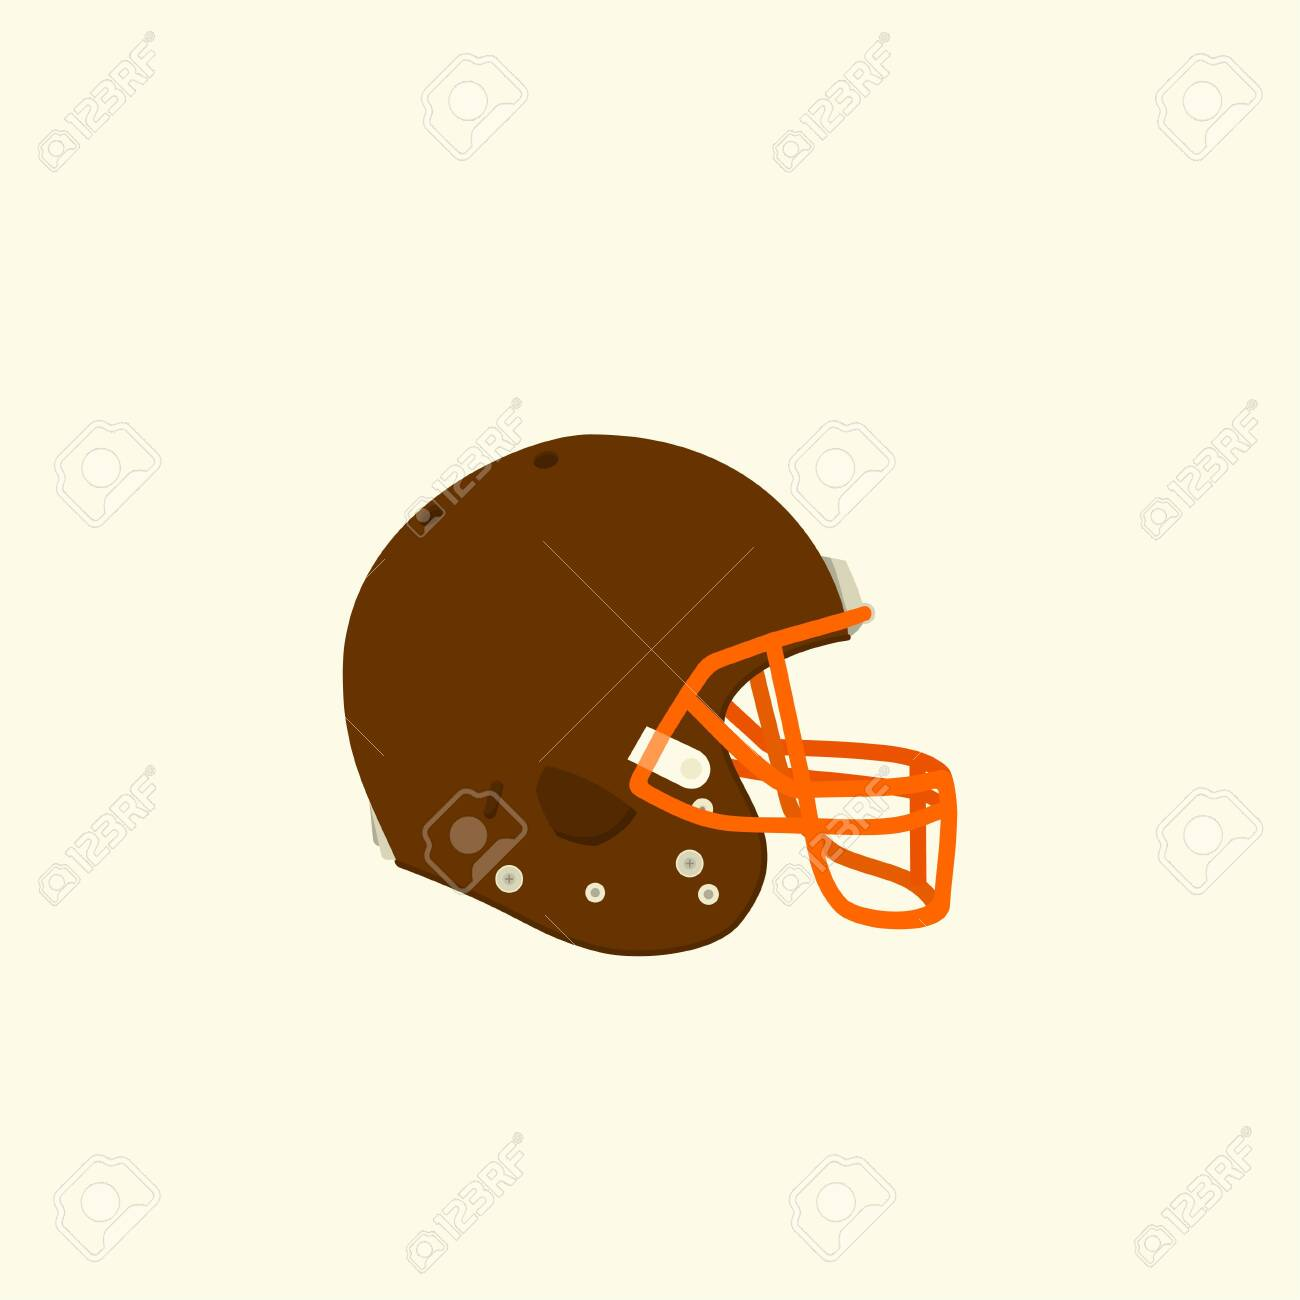 American Football Helmet Vector Illustration For Template Design Royalty Free Cliparts Vectors And Stock Illustration Image 140416213